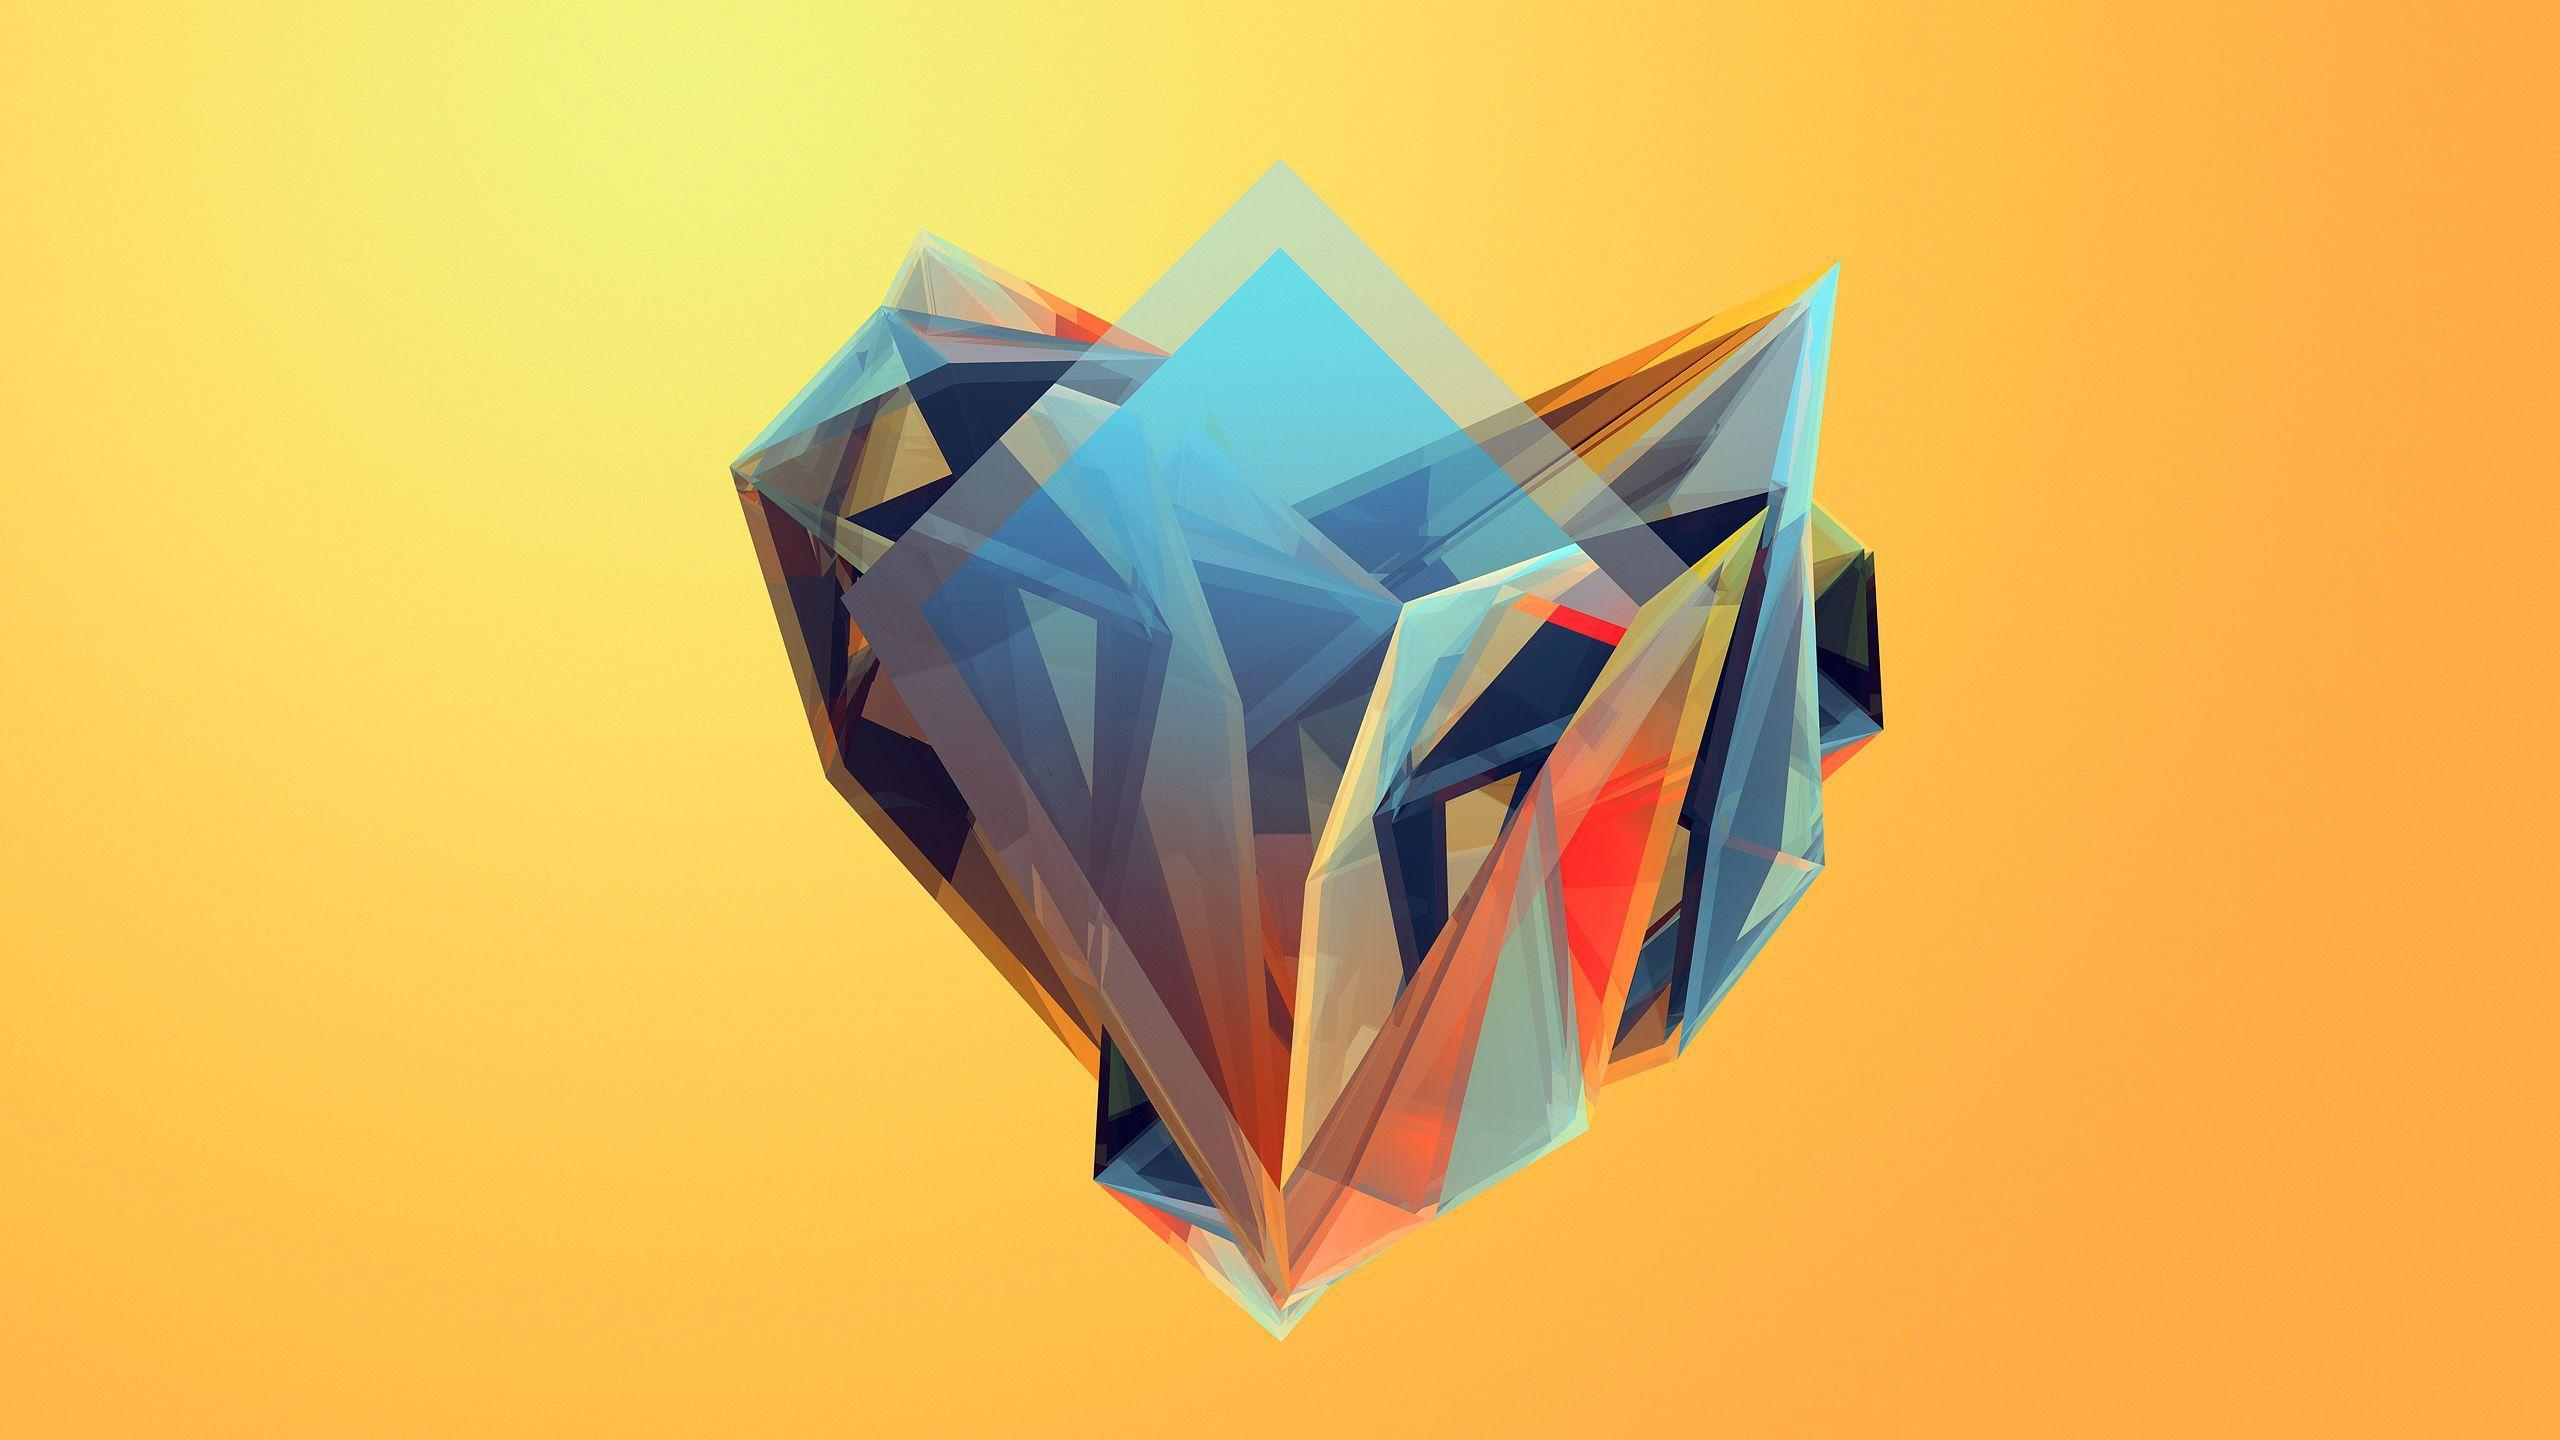 25 HD Polygon Wallpapers 4 | Stopimage